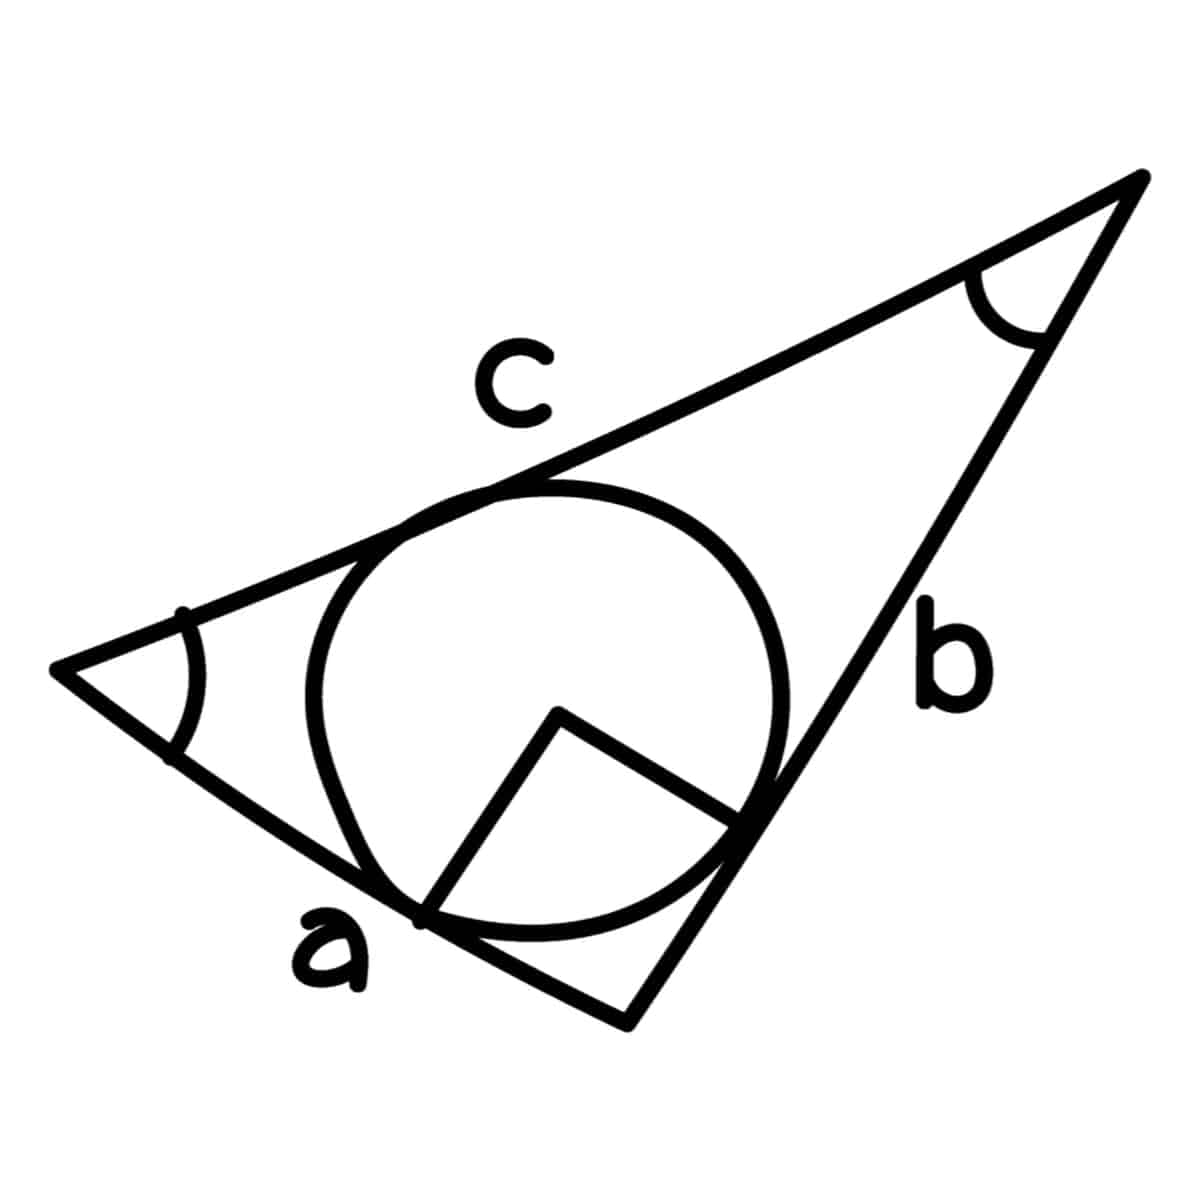 Drawing of a scalene triangle